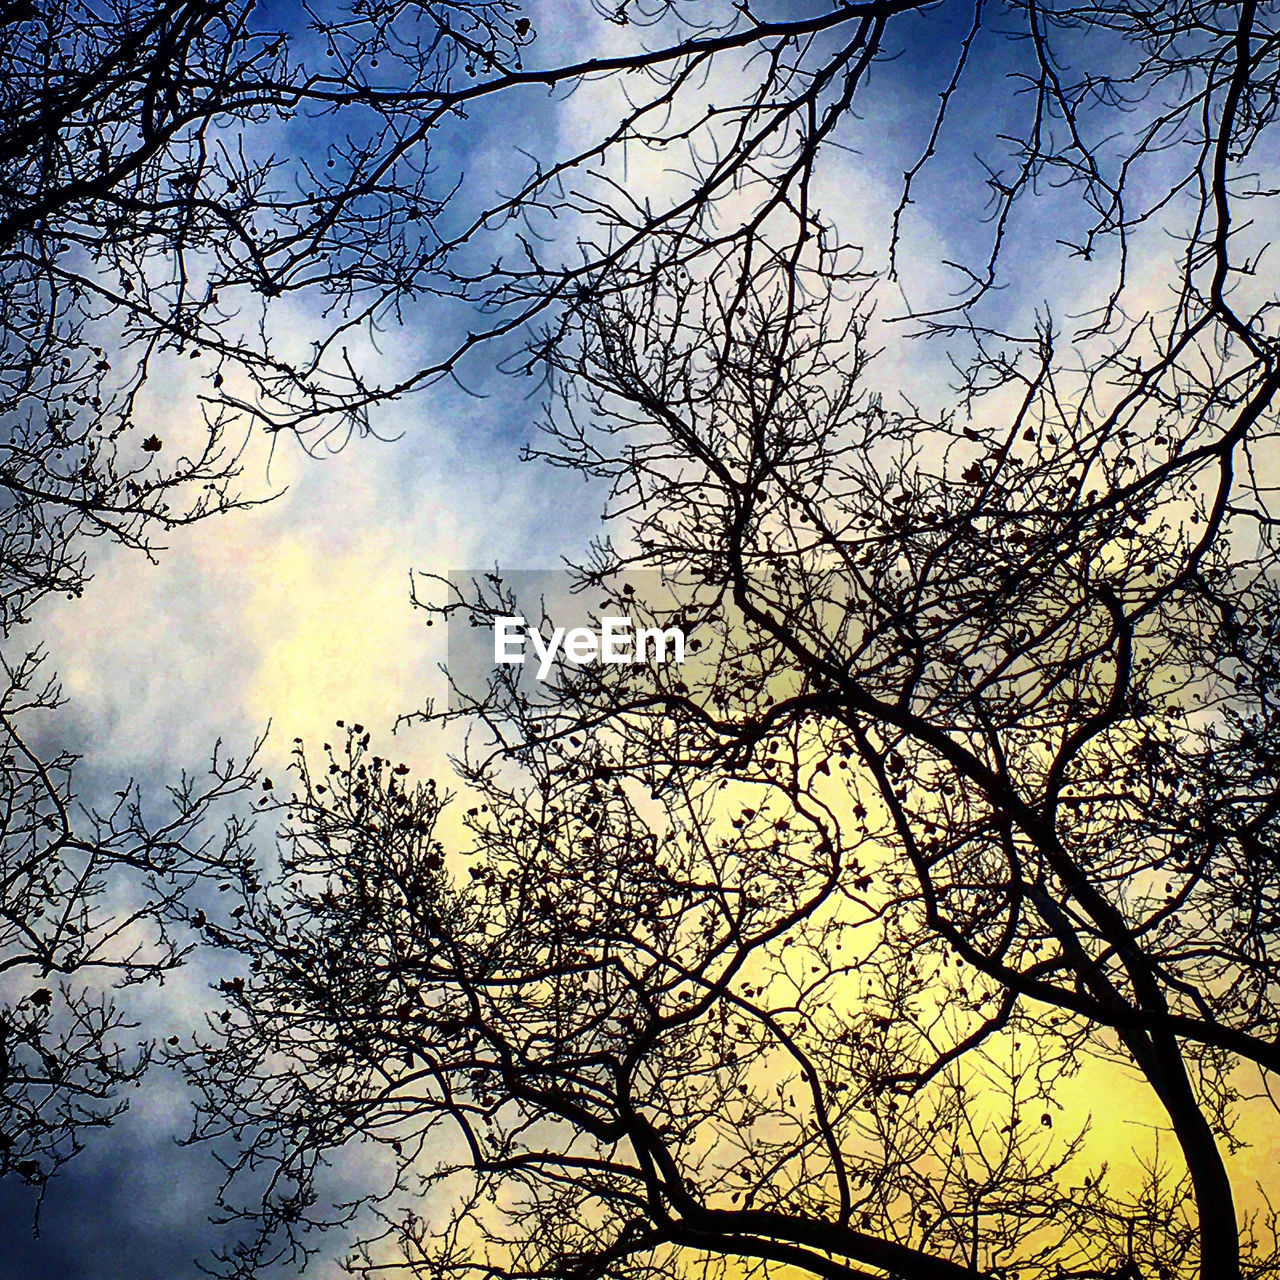 tree, branch, low angle view, nature, sky, beauty in nature, outdoors, bare tree, no people, tranquility, silhouette, tranquil scene, day, forest, scenics